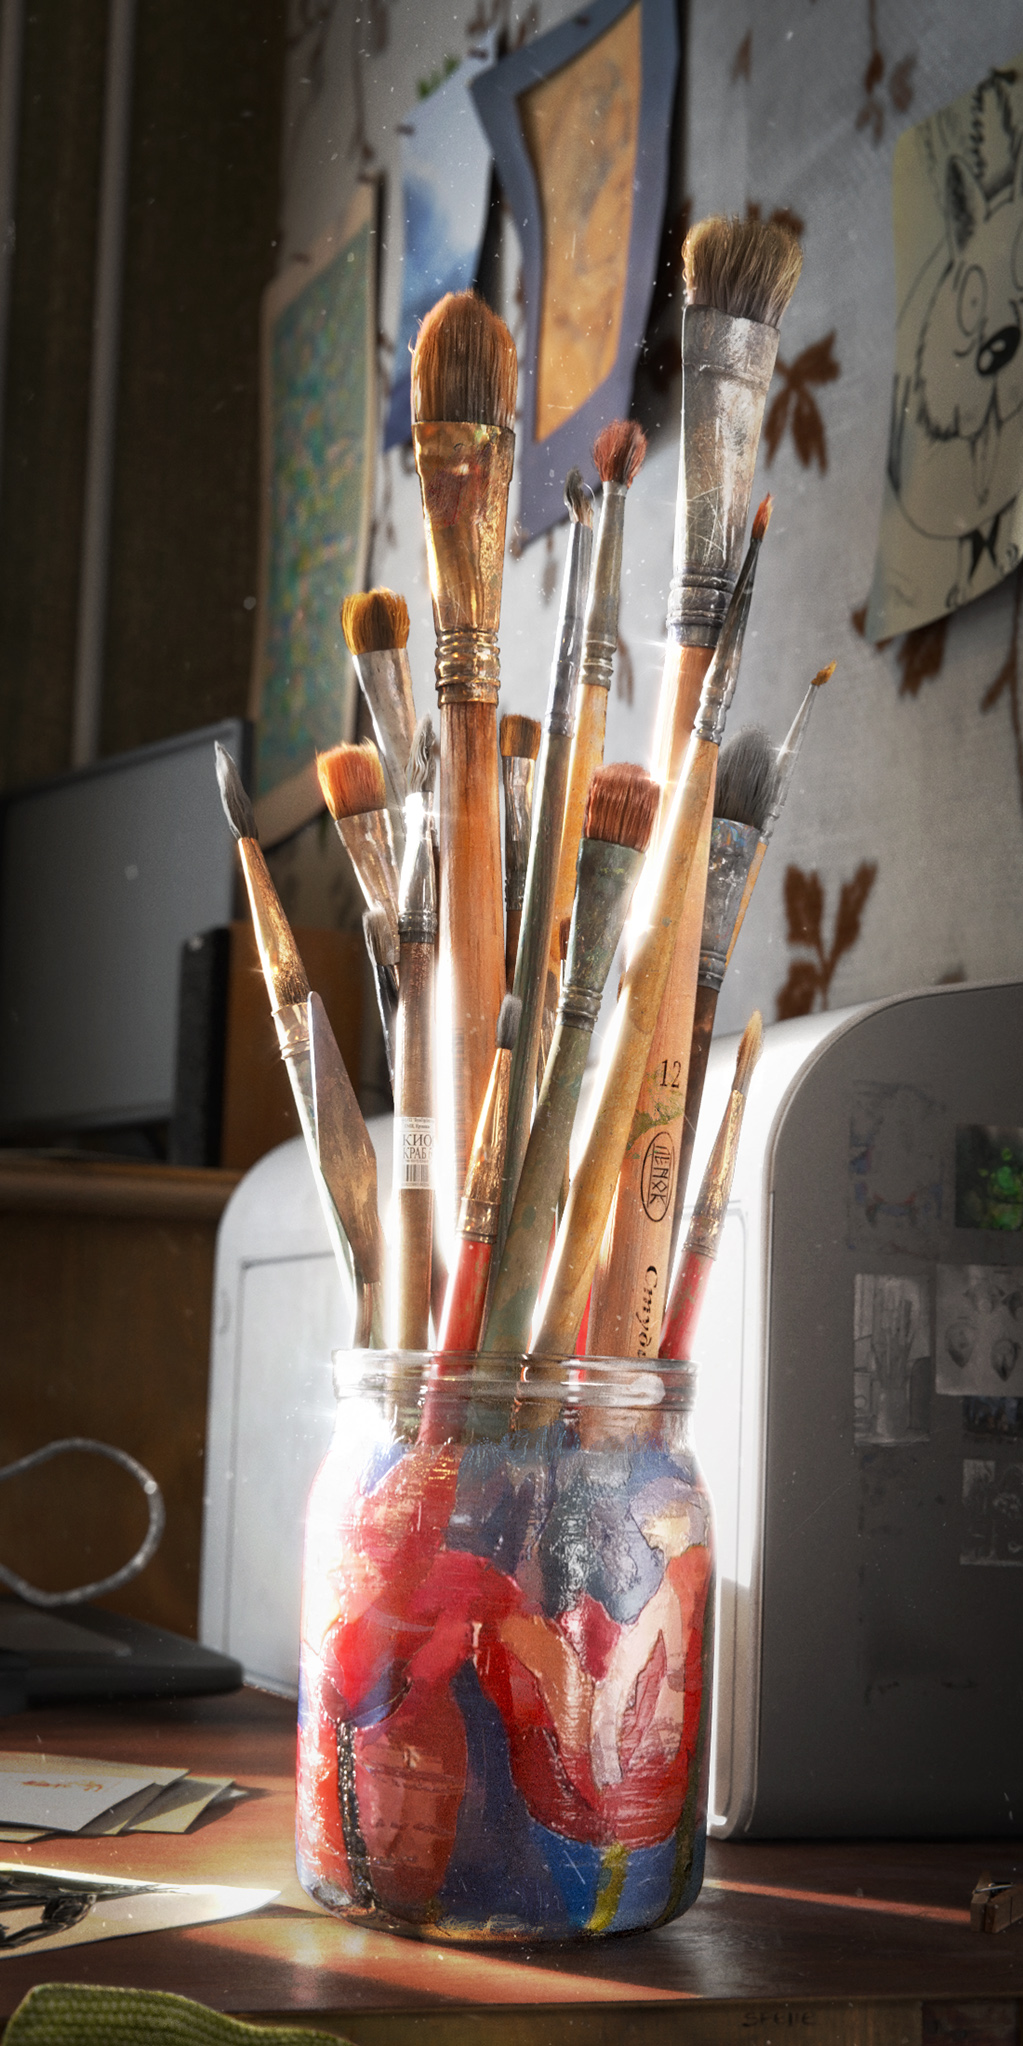 The Making Of Where Do Little Spiders: Making-of The Brushes • Creative Shrimp